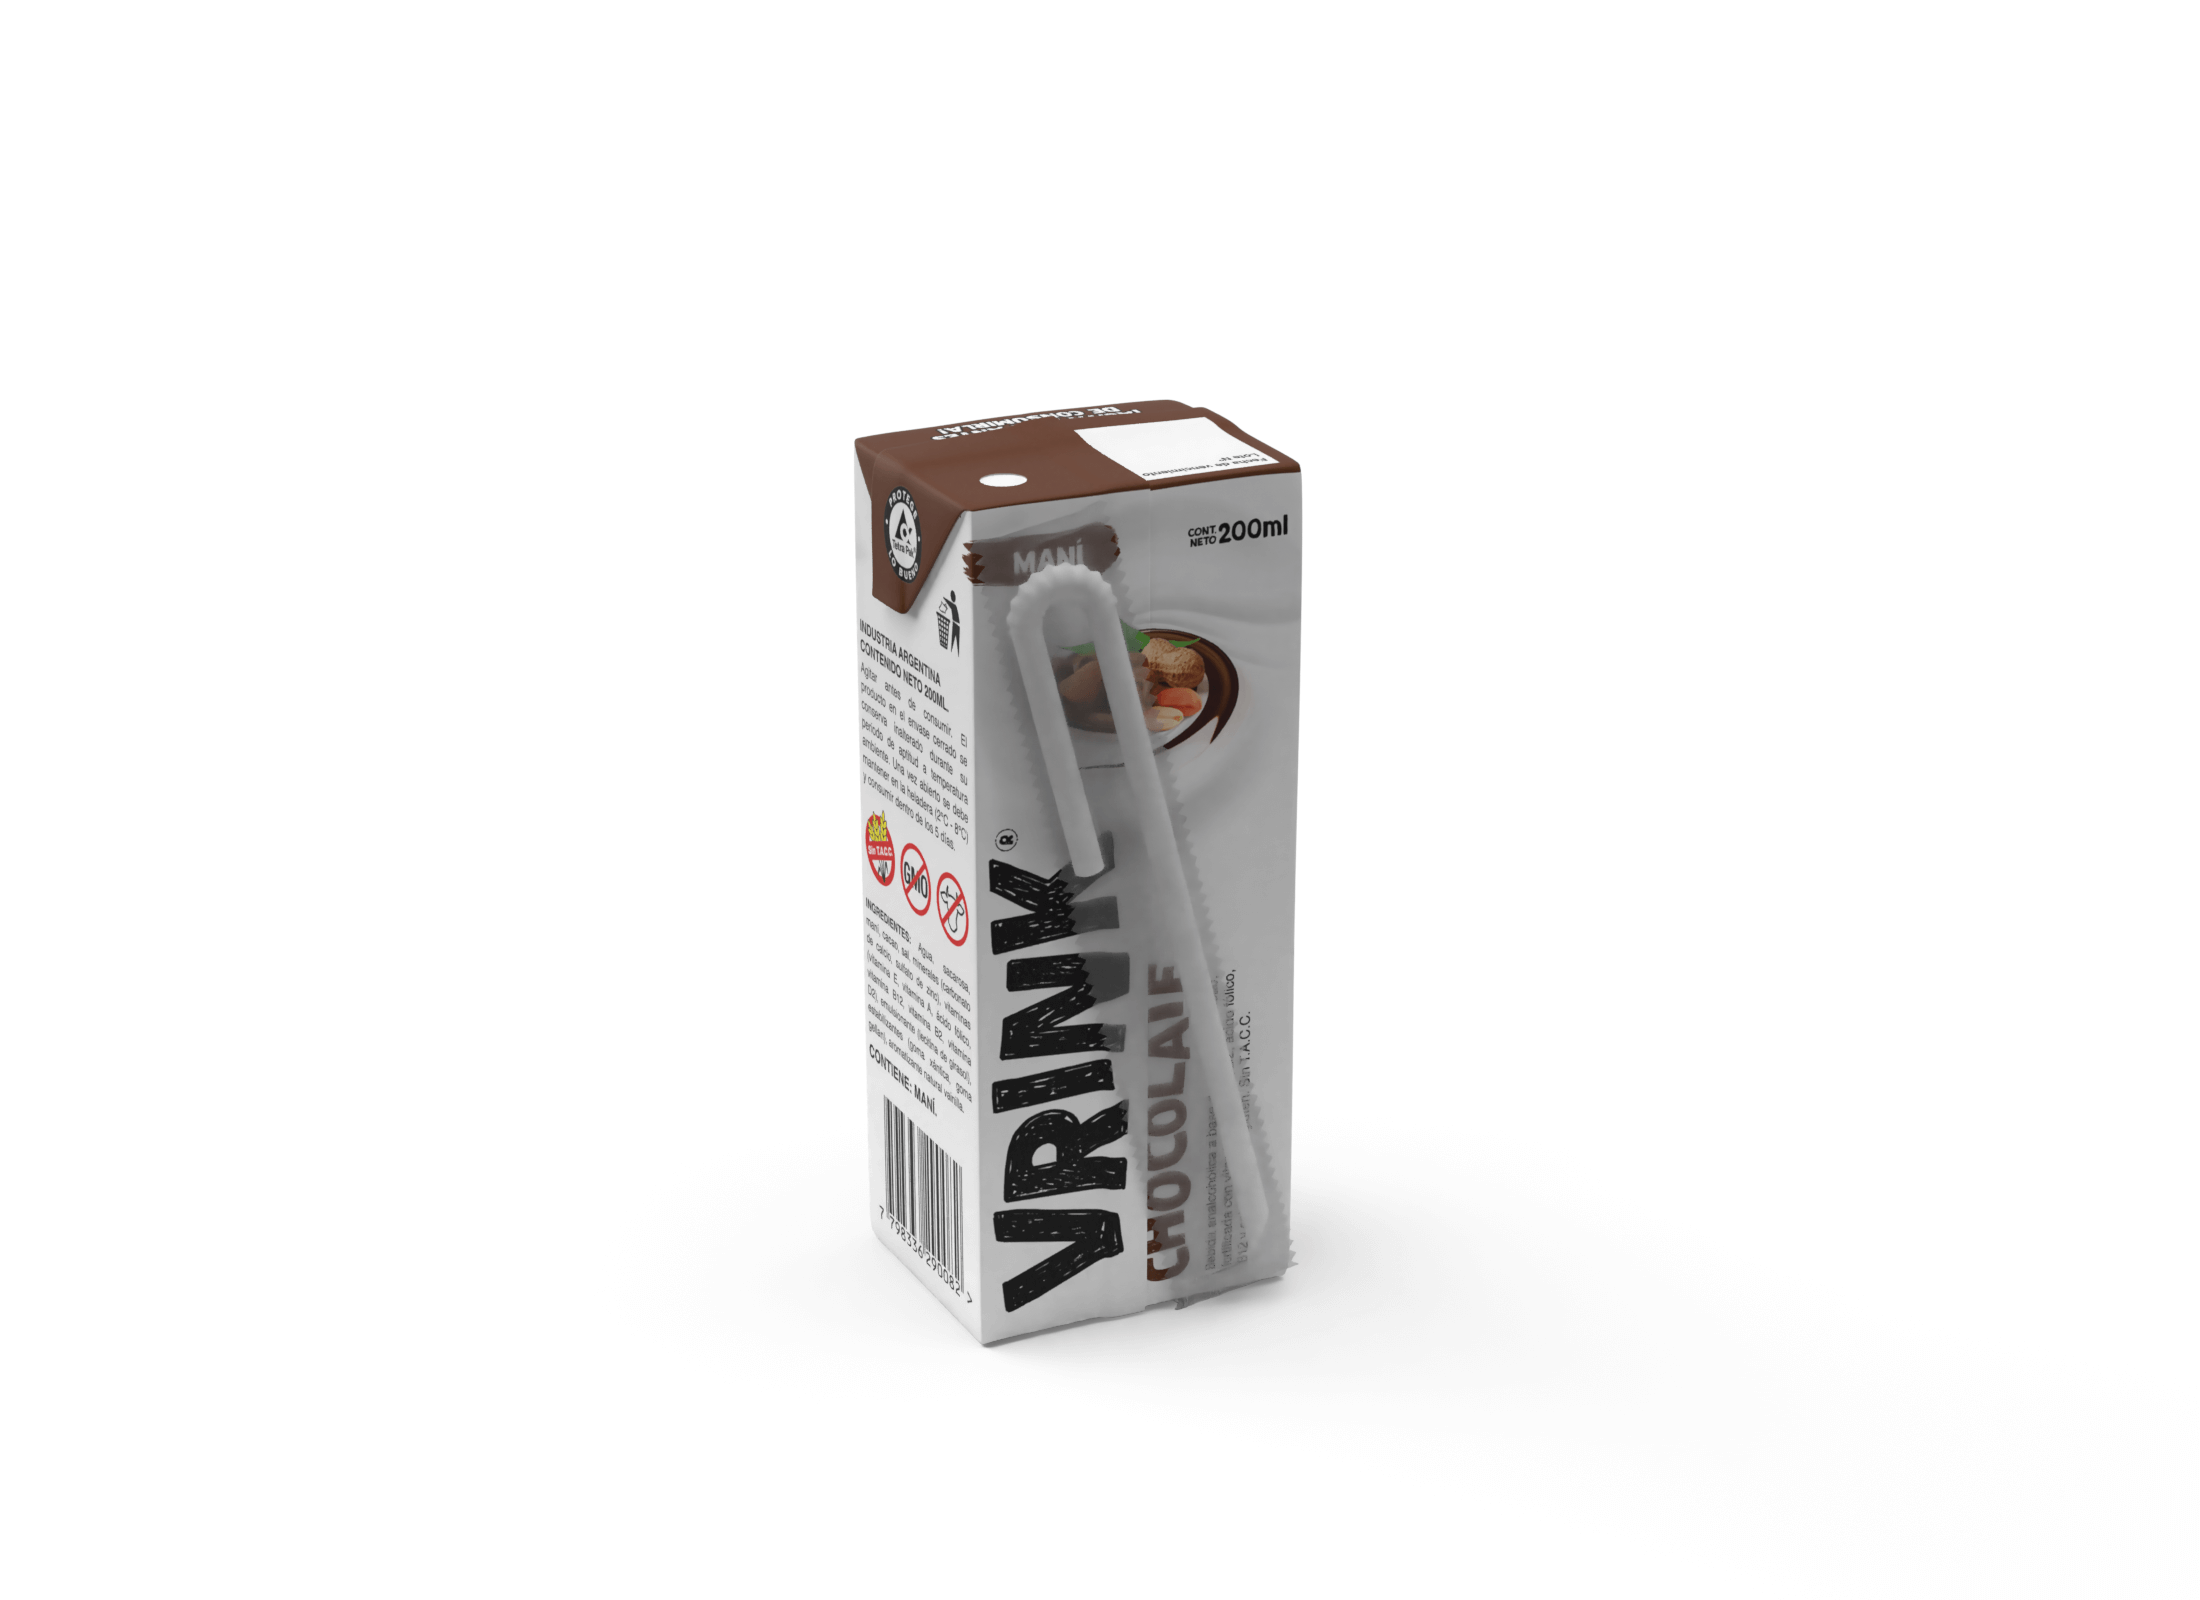 Vrink Mani Chocolate 200ml